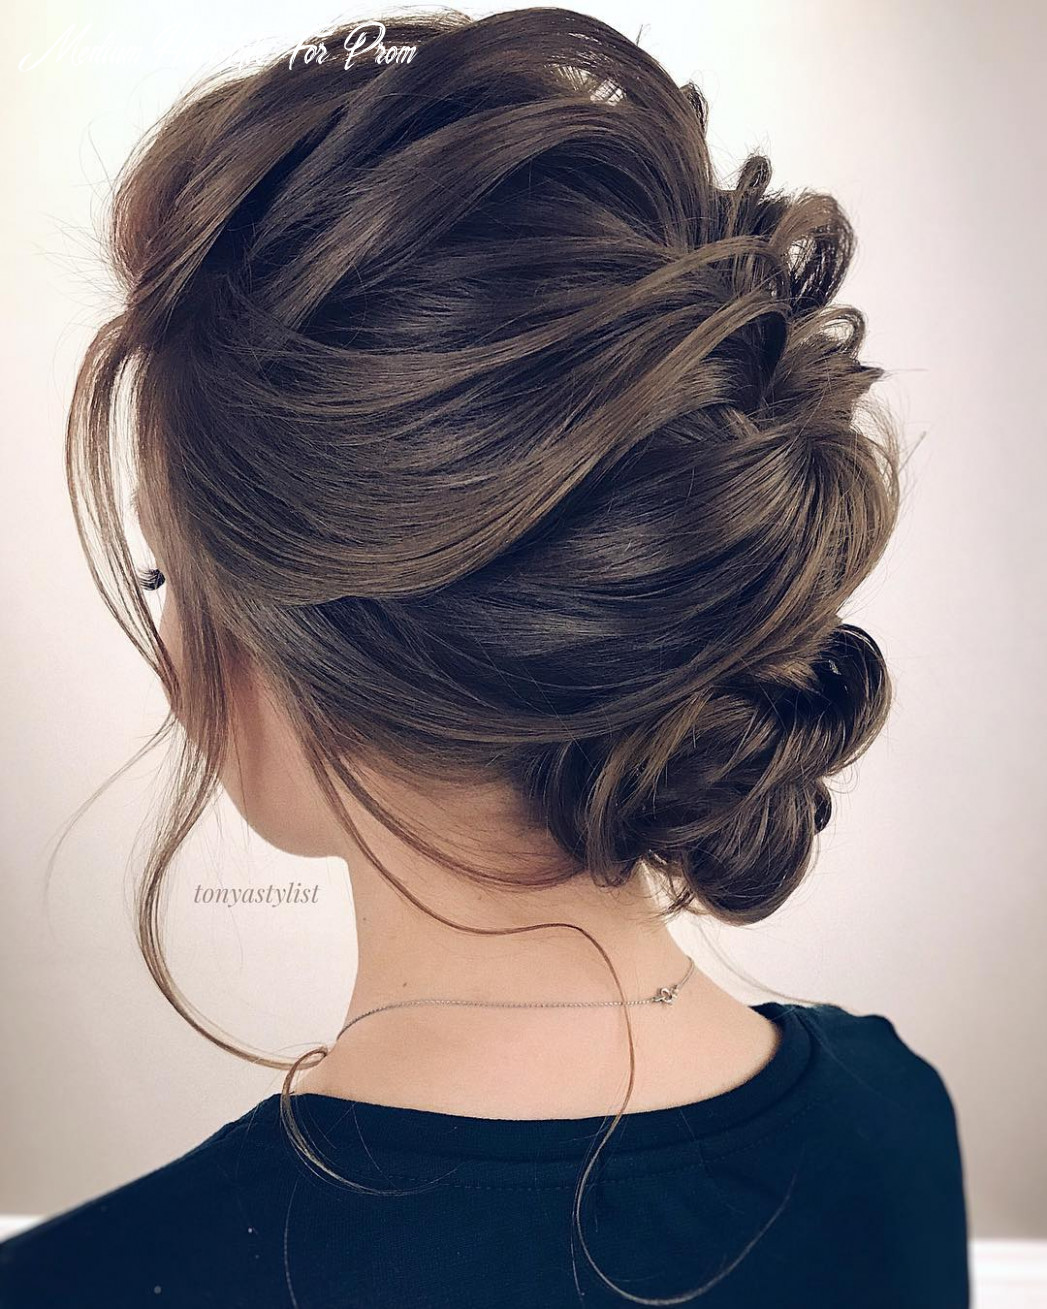 Best updo hairstyles for medium length hair, prom and homecoming